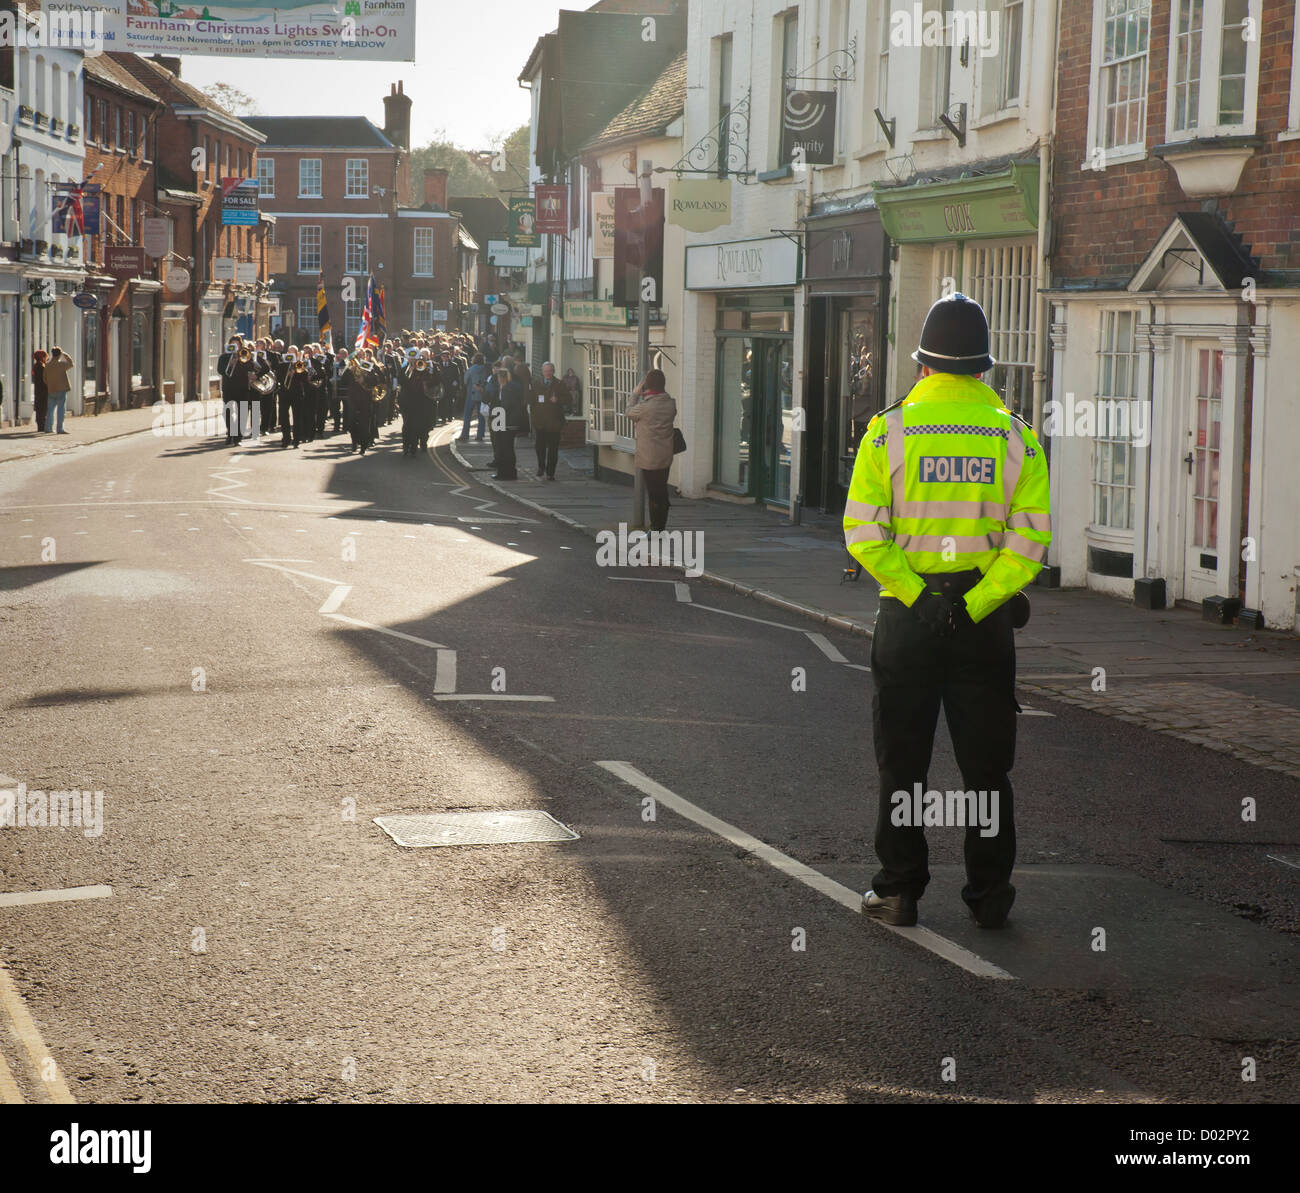 Policing a remembrance day Parade, Farnham. - Stock Image